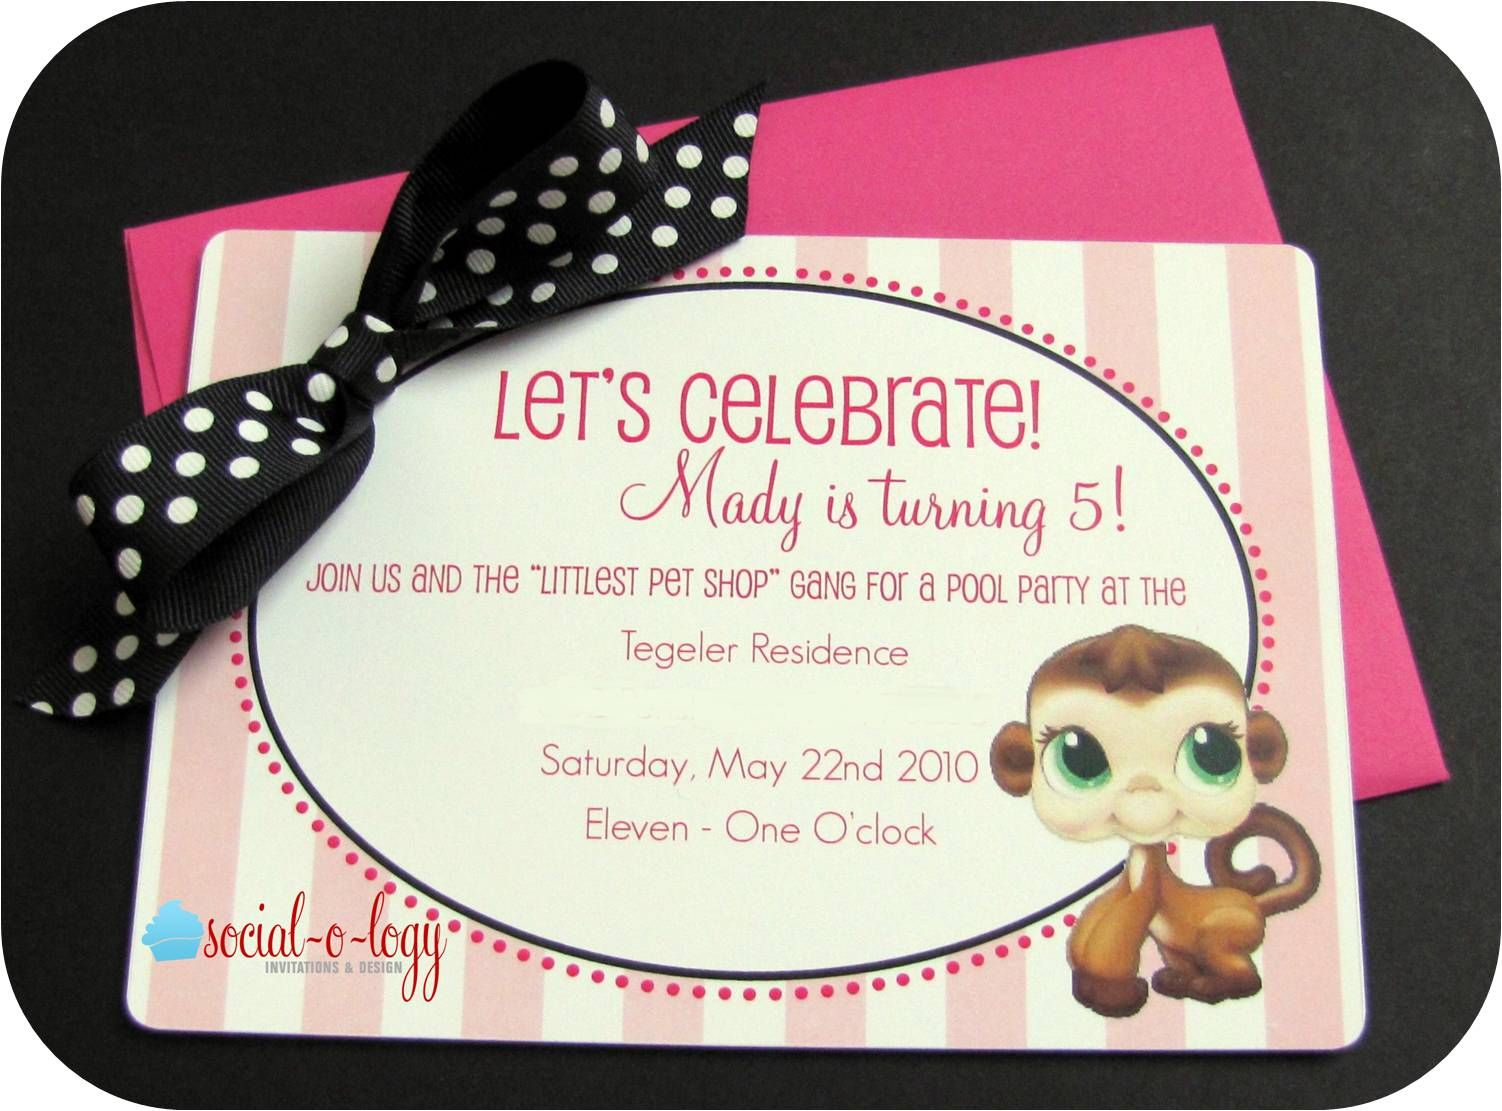 logy Invitations and Design: The Birthday Party - Littlest Pet ...